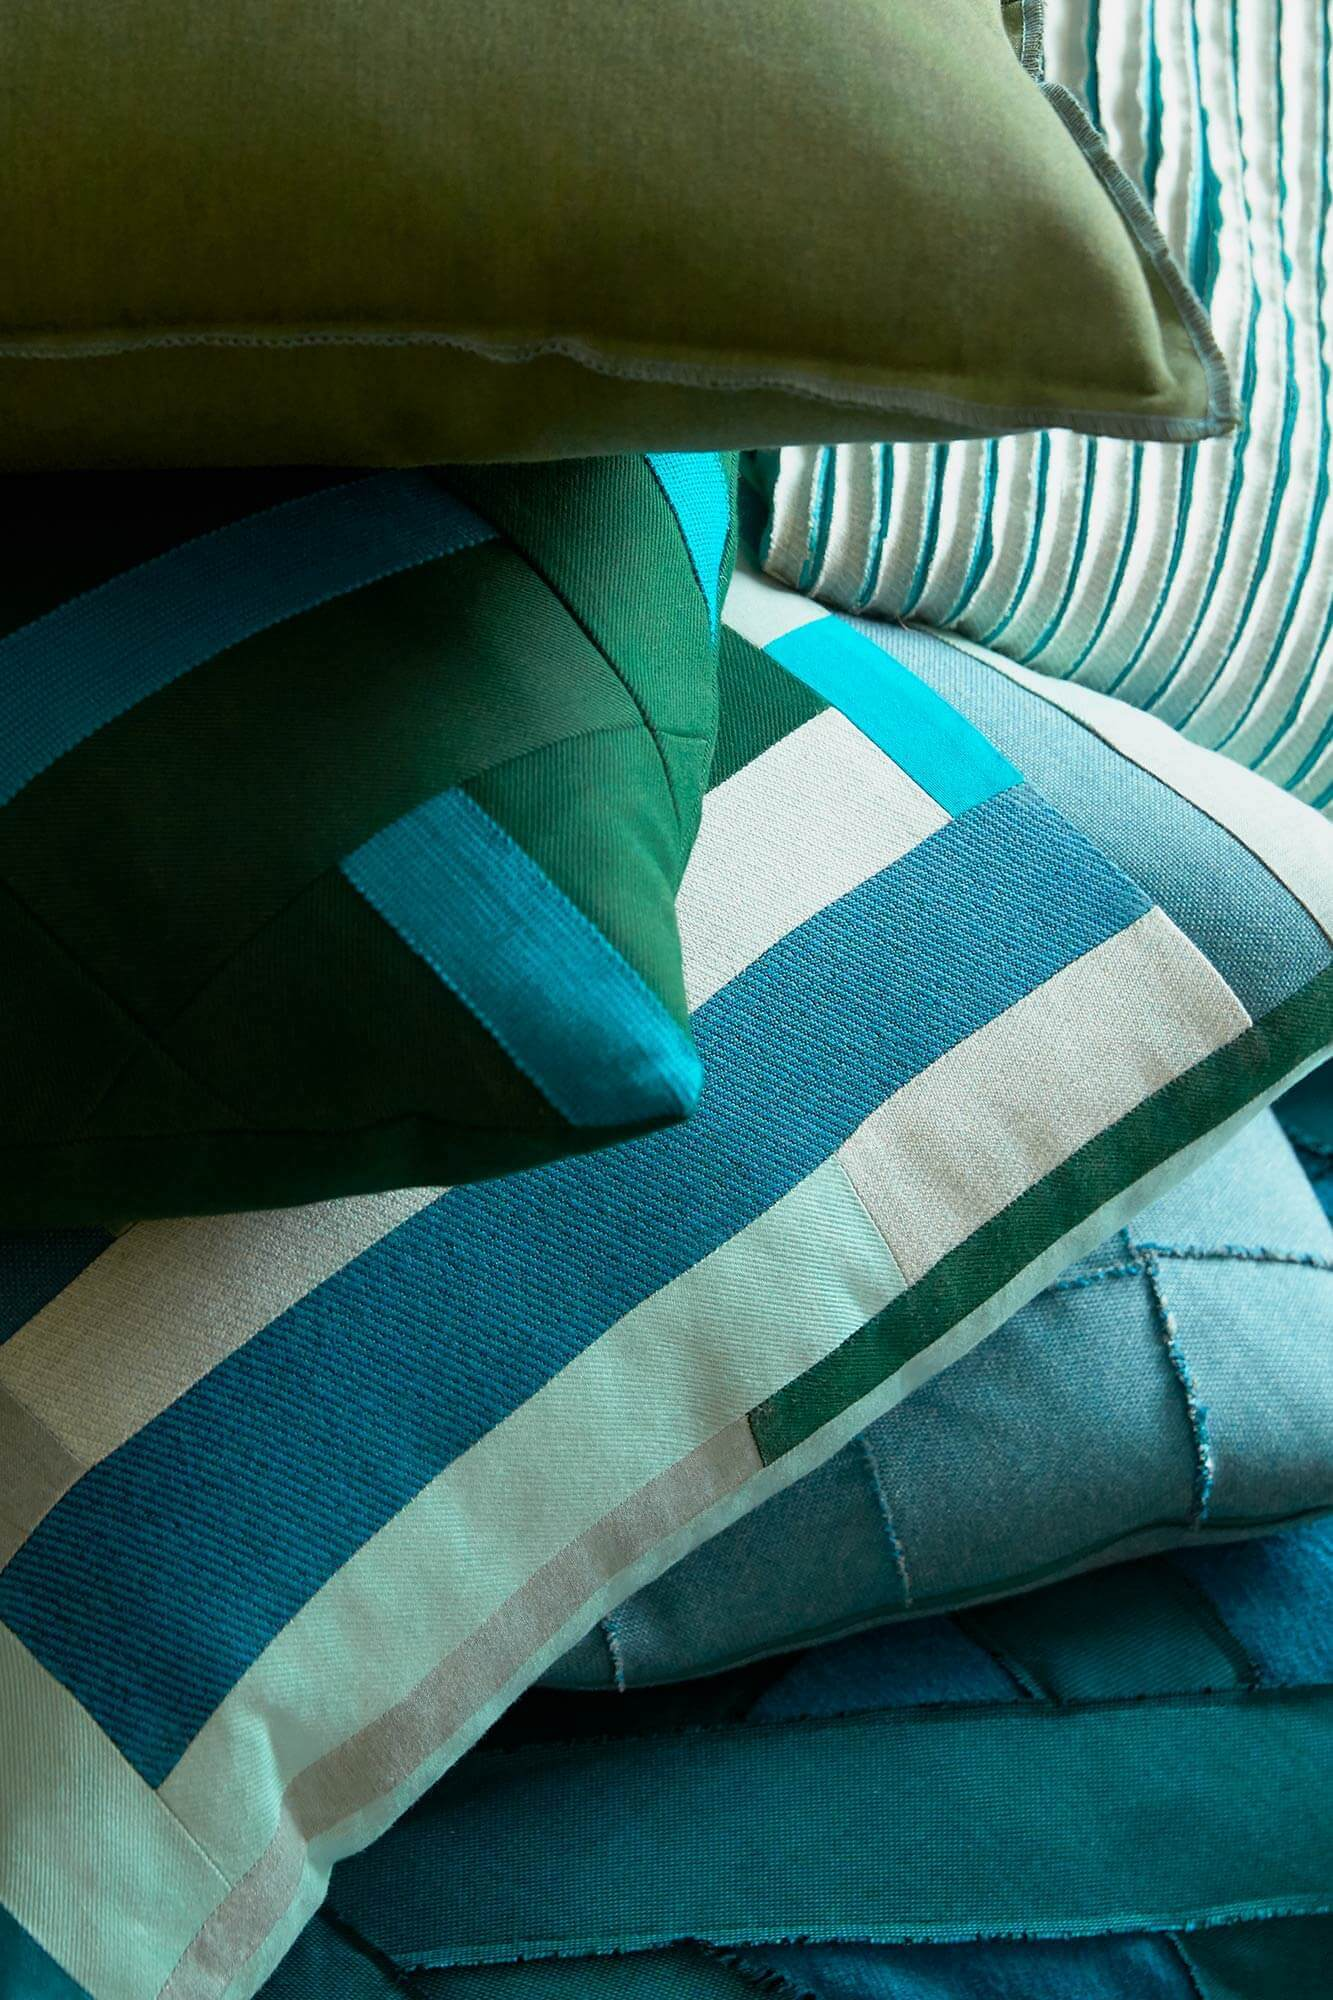 Decorative pillows made using Sunbrella upholstery fabrics stacked